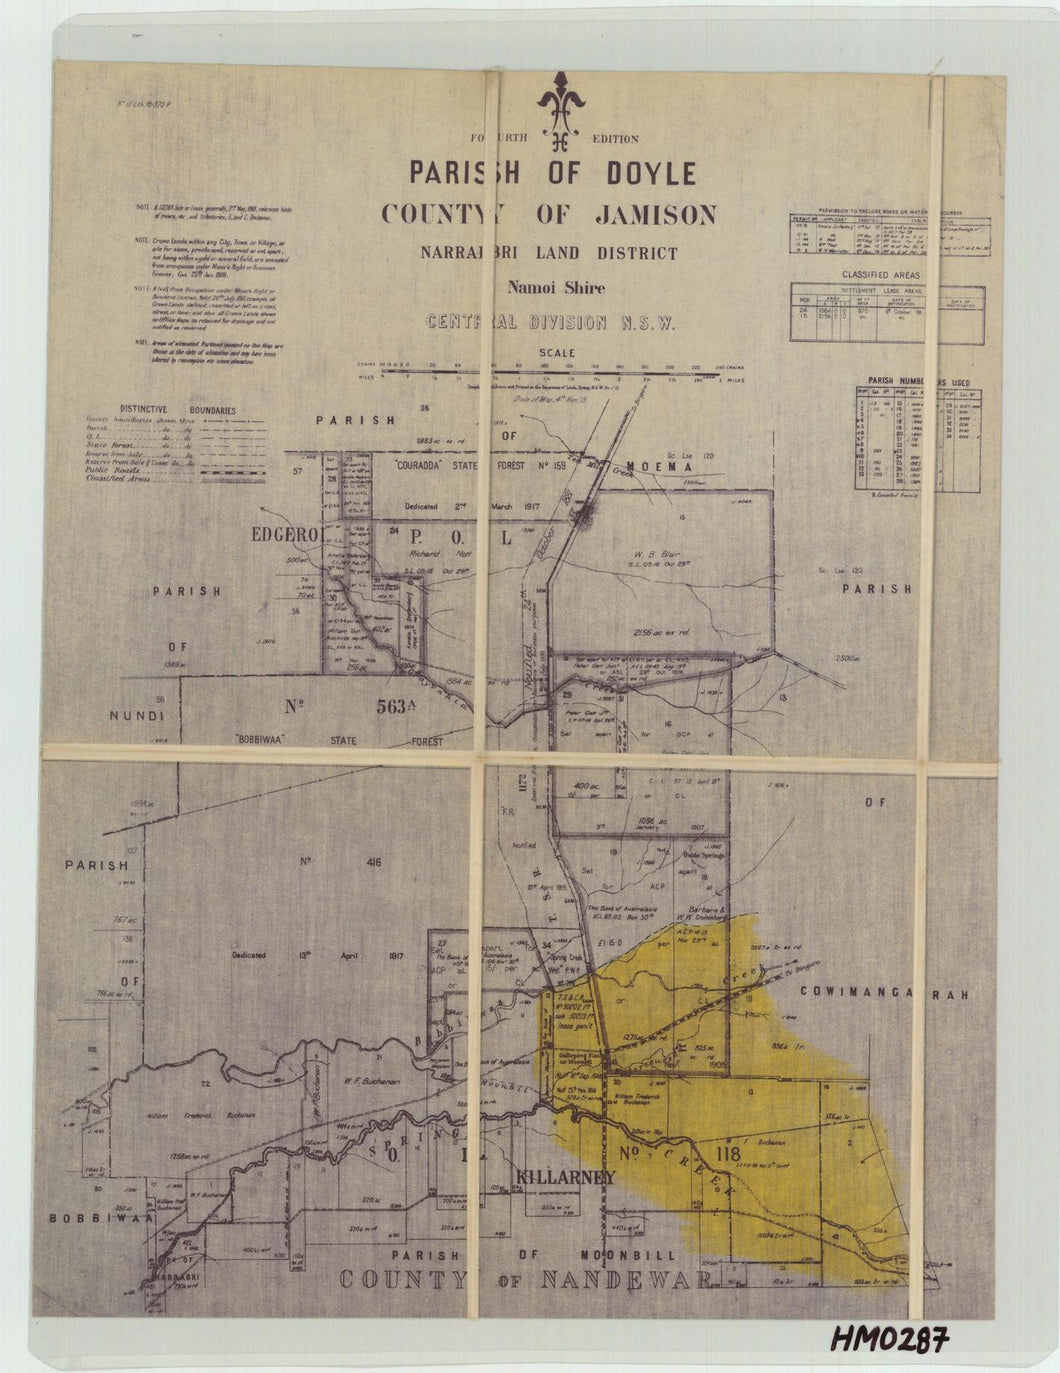 Image of County of Jamison, Parish of Doyle  map